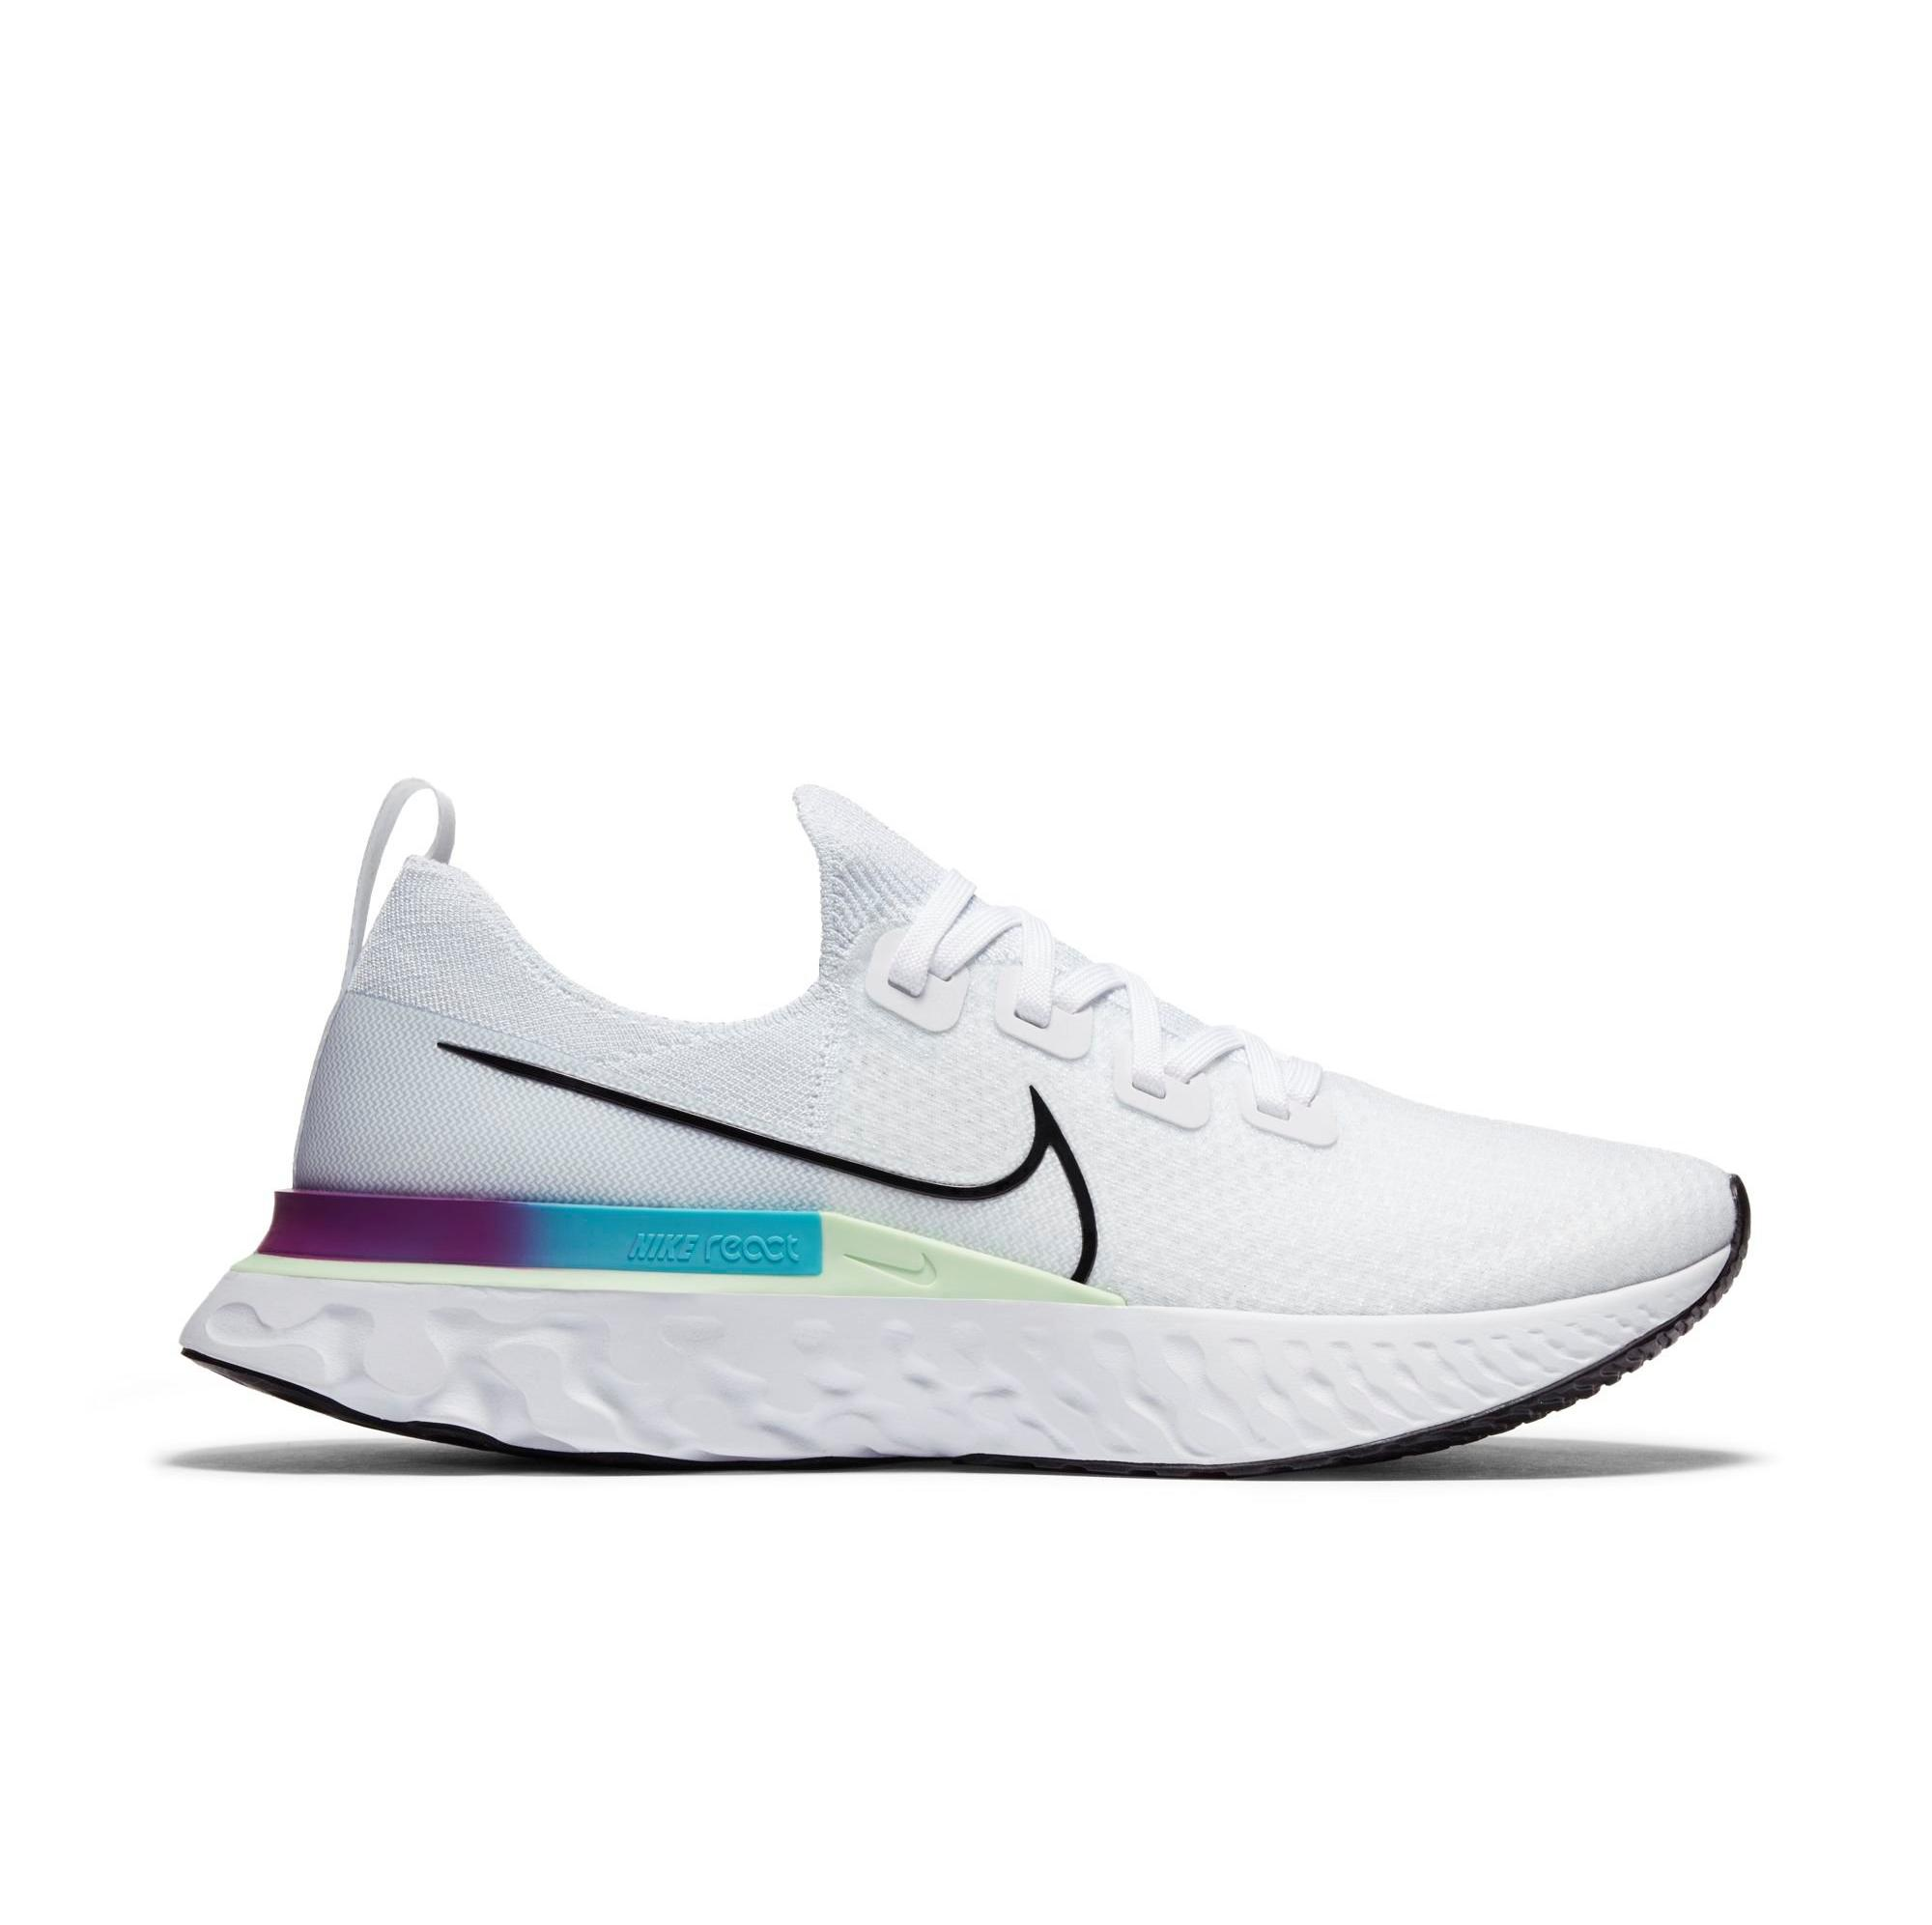 "Nike React Infinity Run Flyknit ""White/Black/Vapor Green"" Men's Running Shoe"